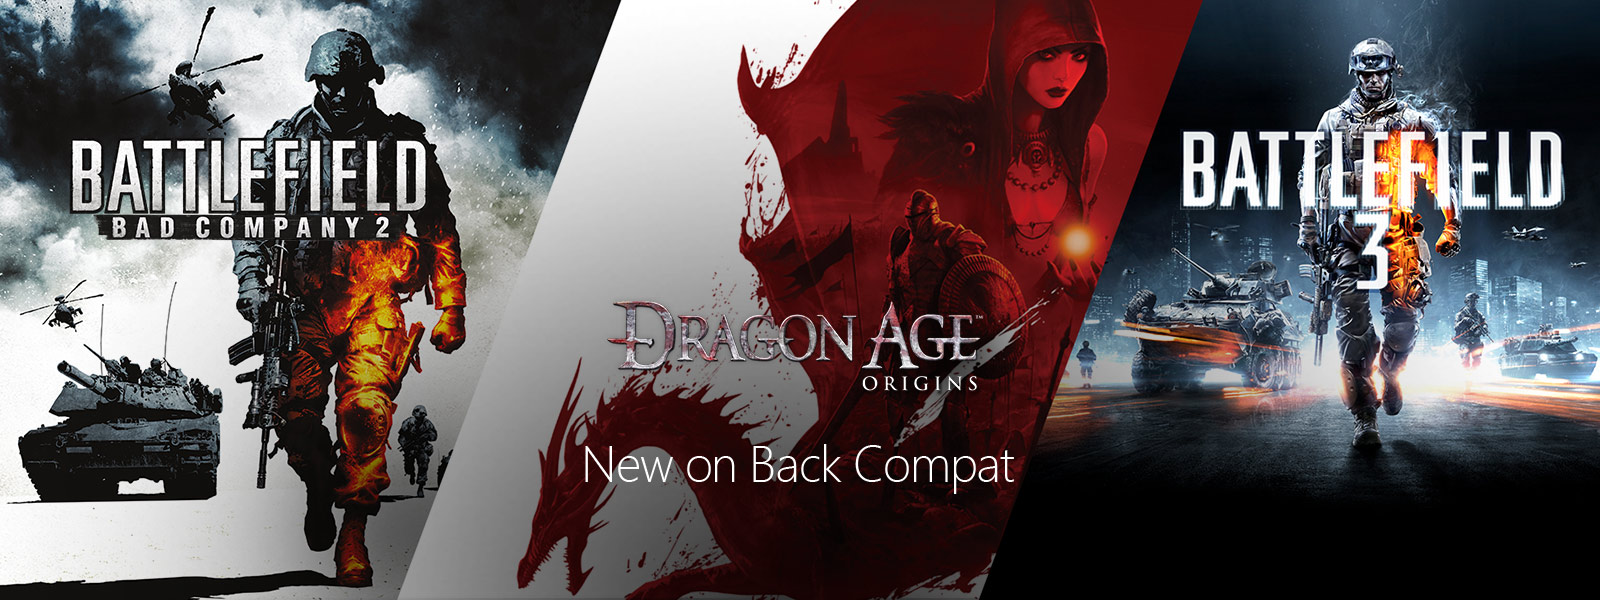 dragon age origins and battlefield 3 on Backward Compatibility